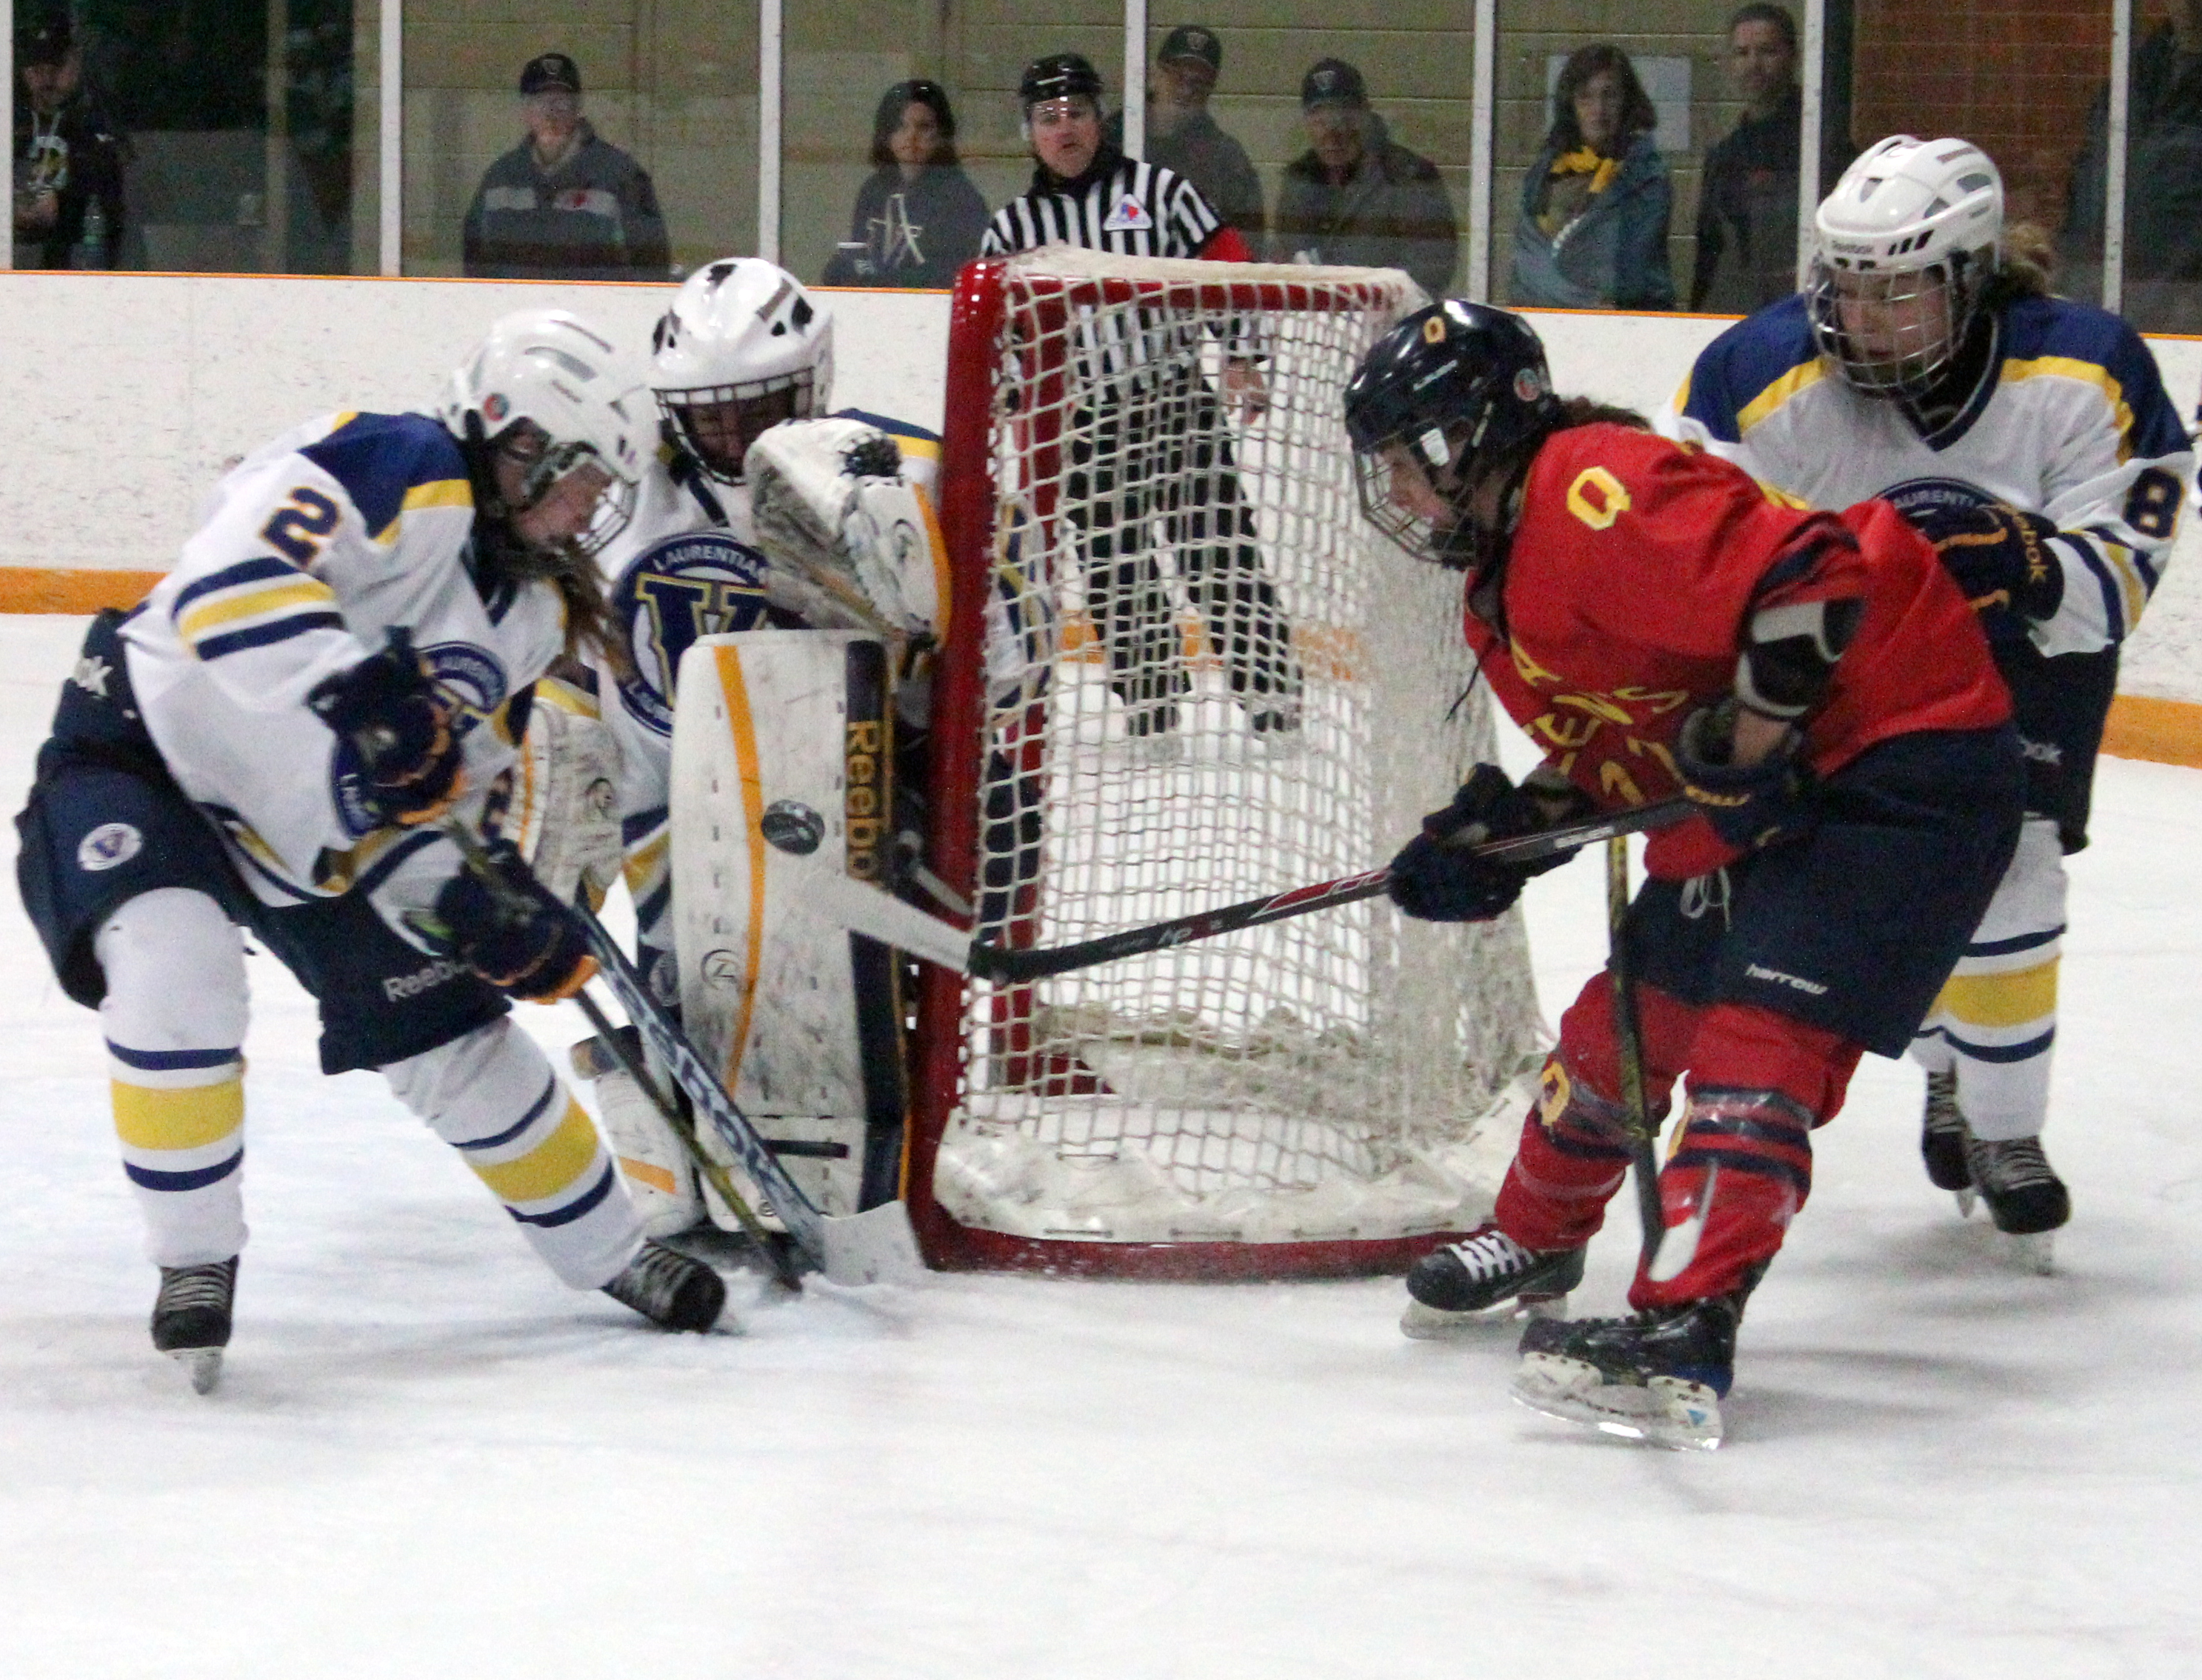 The Laurentian Voyageur's women's hockey team plays against Queens on Nov. 2. Photo by Gabriel Rodrigues.